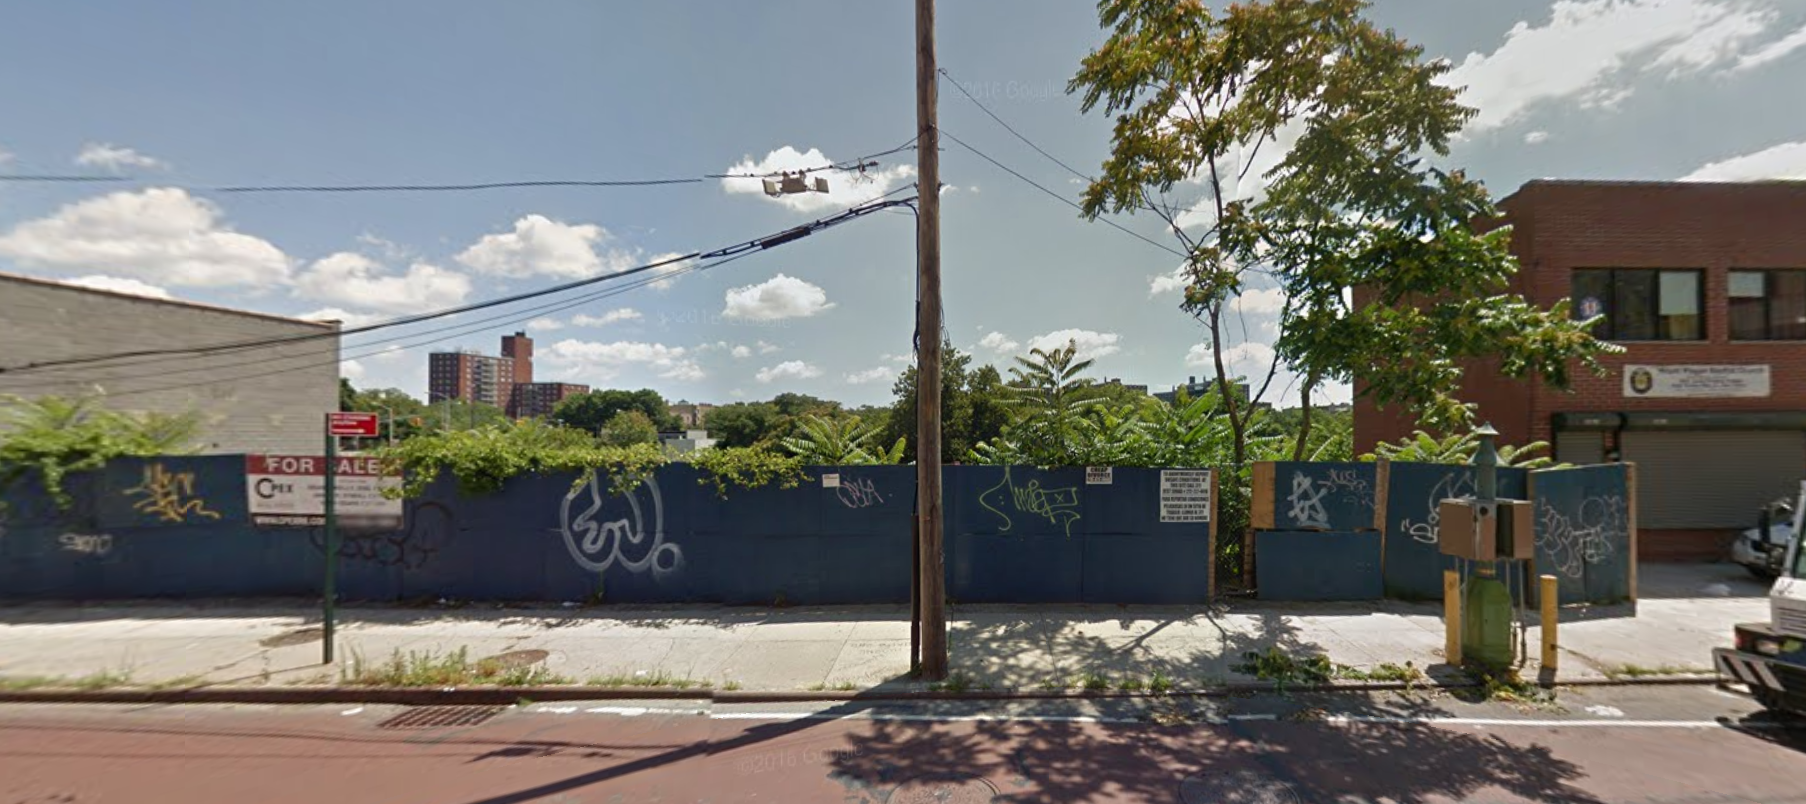 3466 Webster Avenue, image via Google Maps